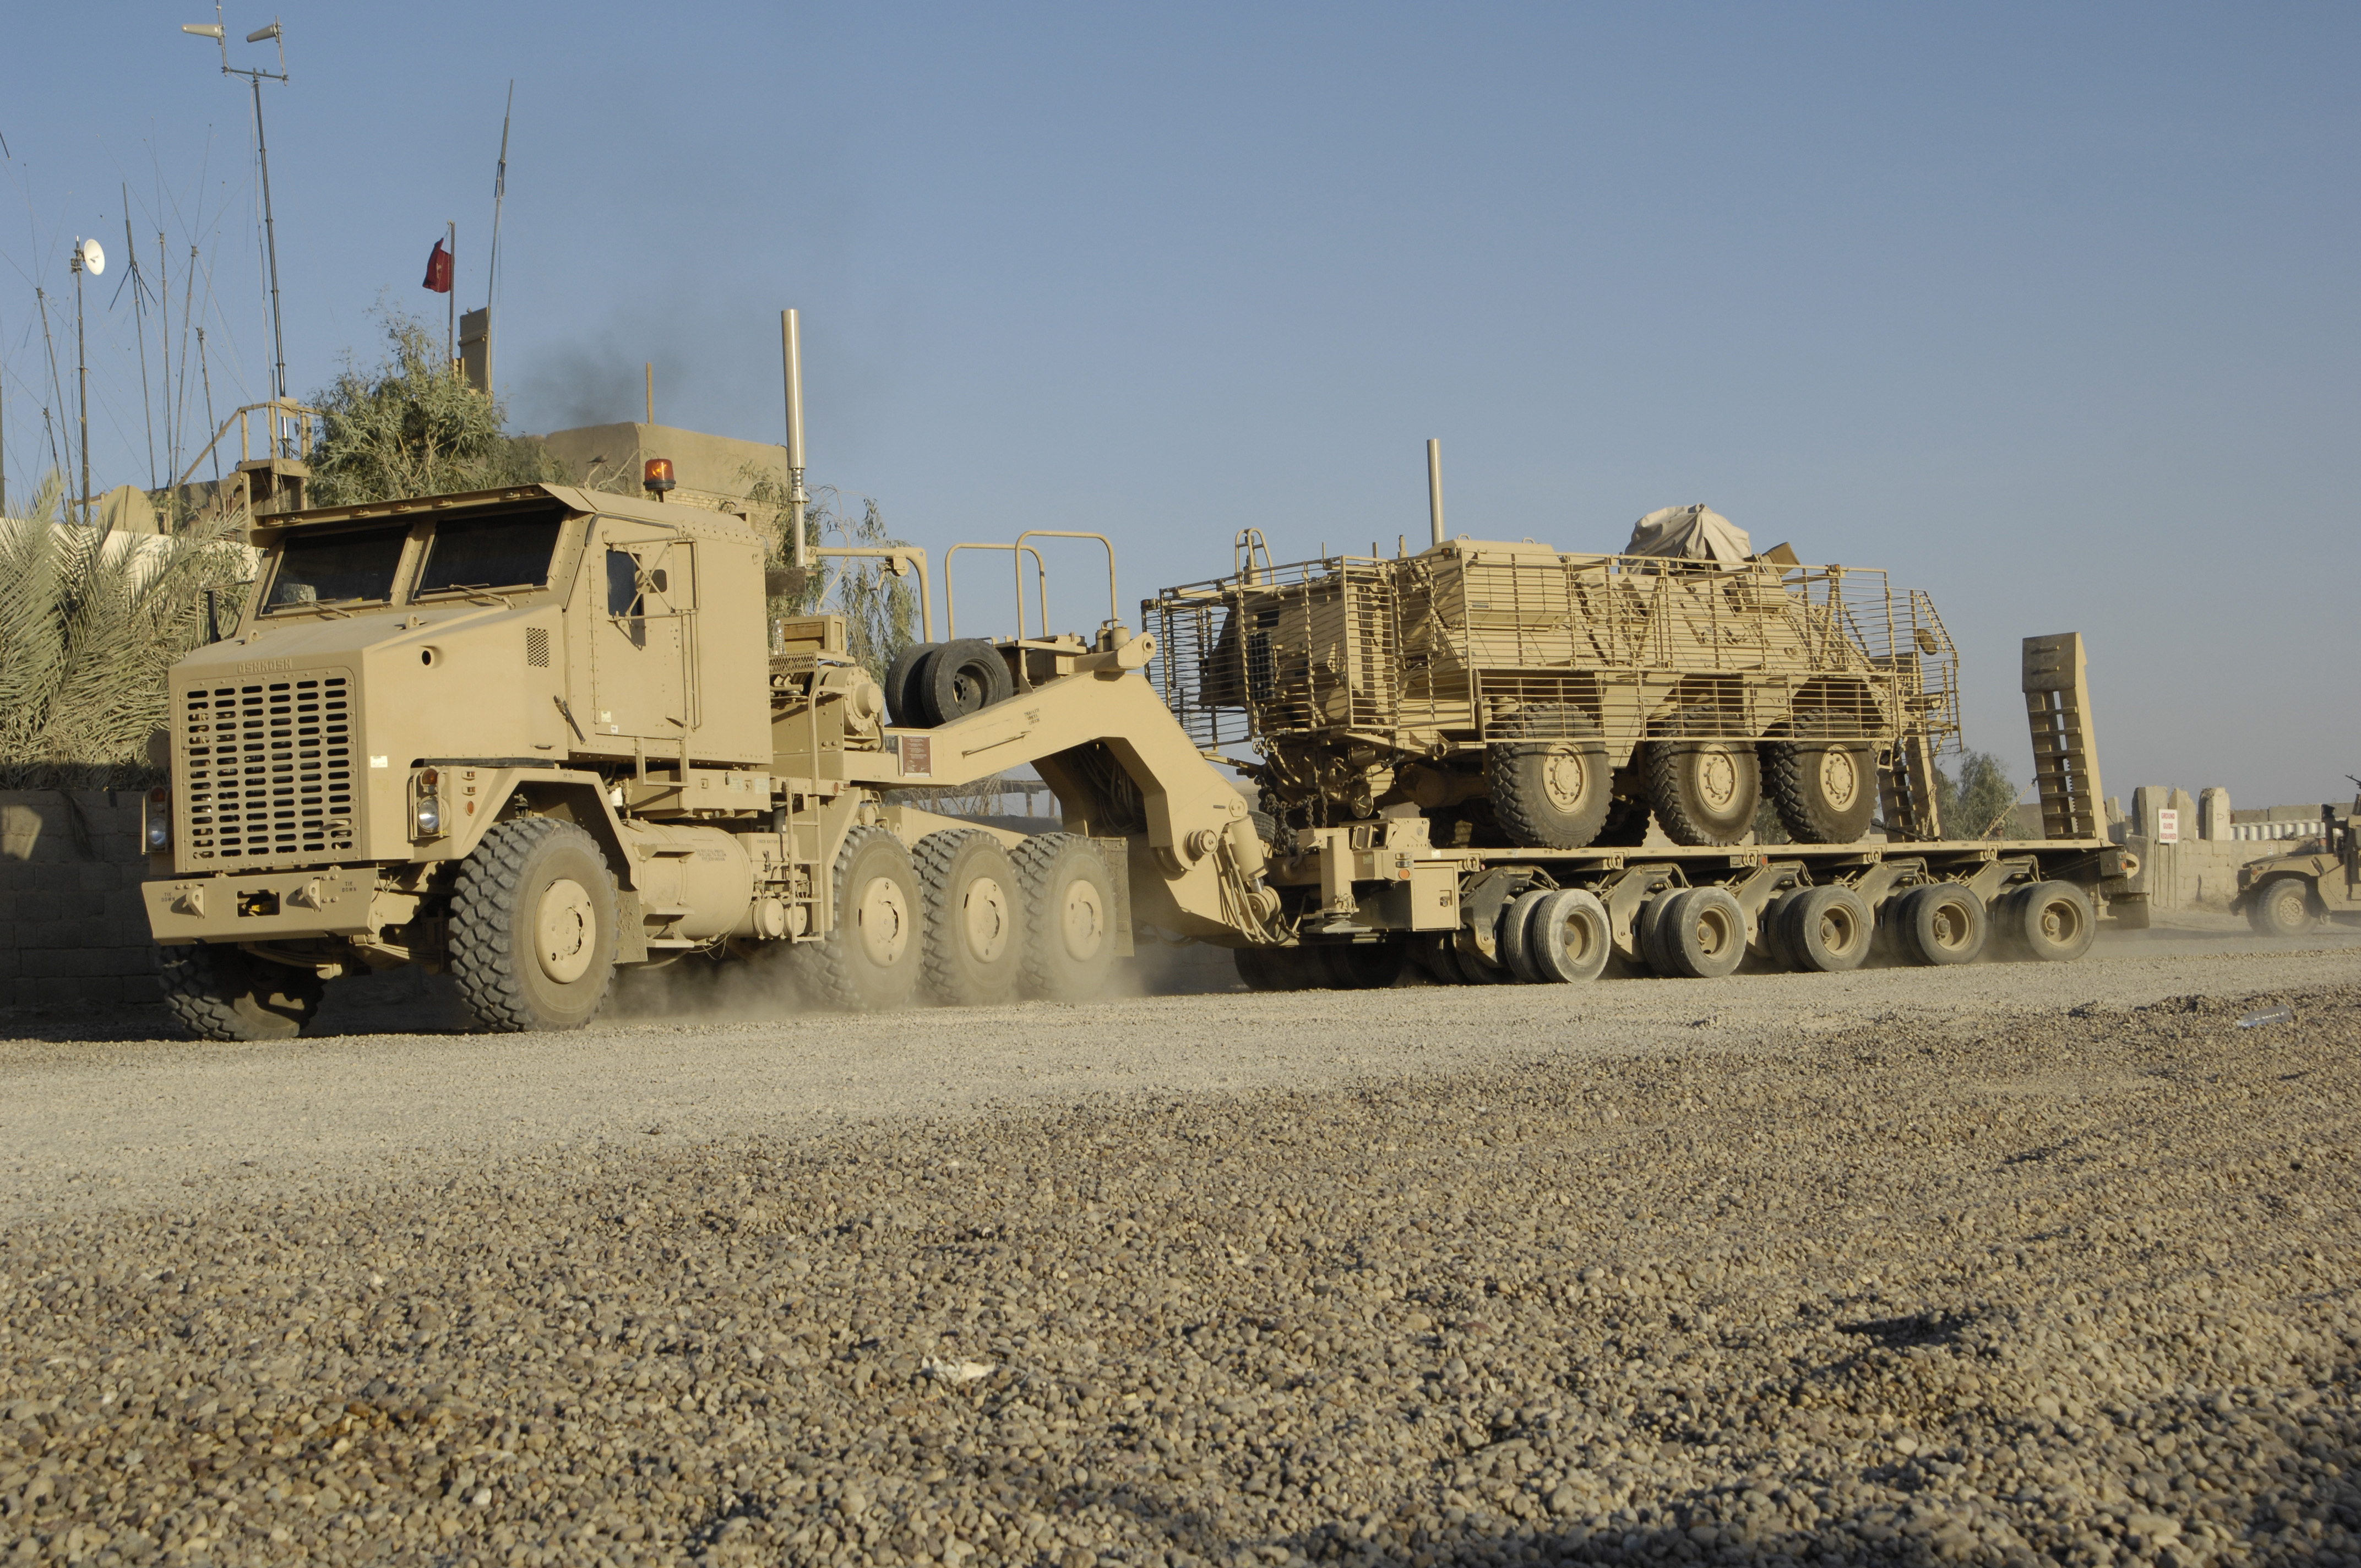 Army Vehicles For Sale >> Heavy Equipment Transport System | Military Wiki | FANDOM powered by Wikia